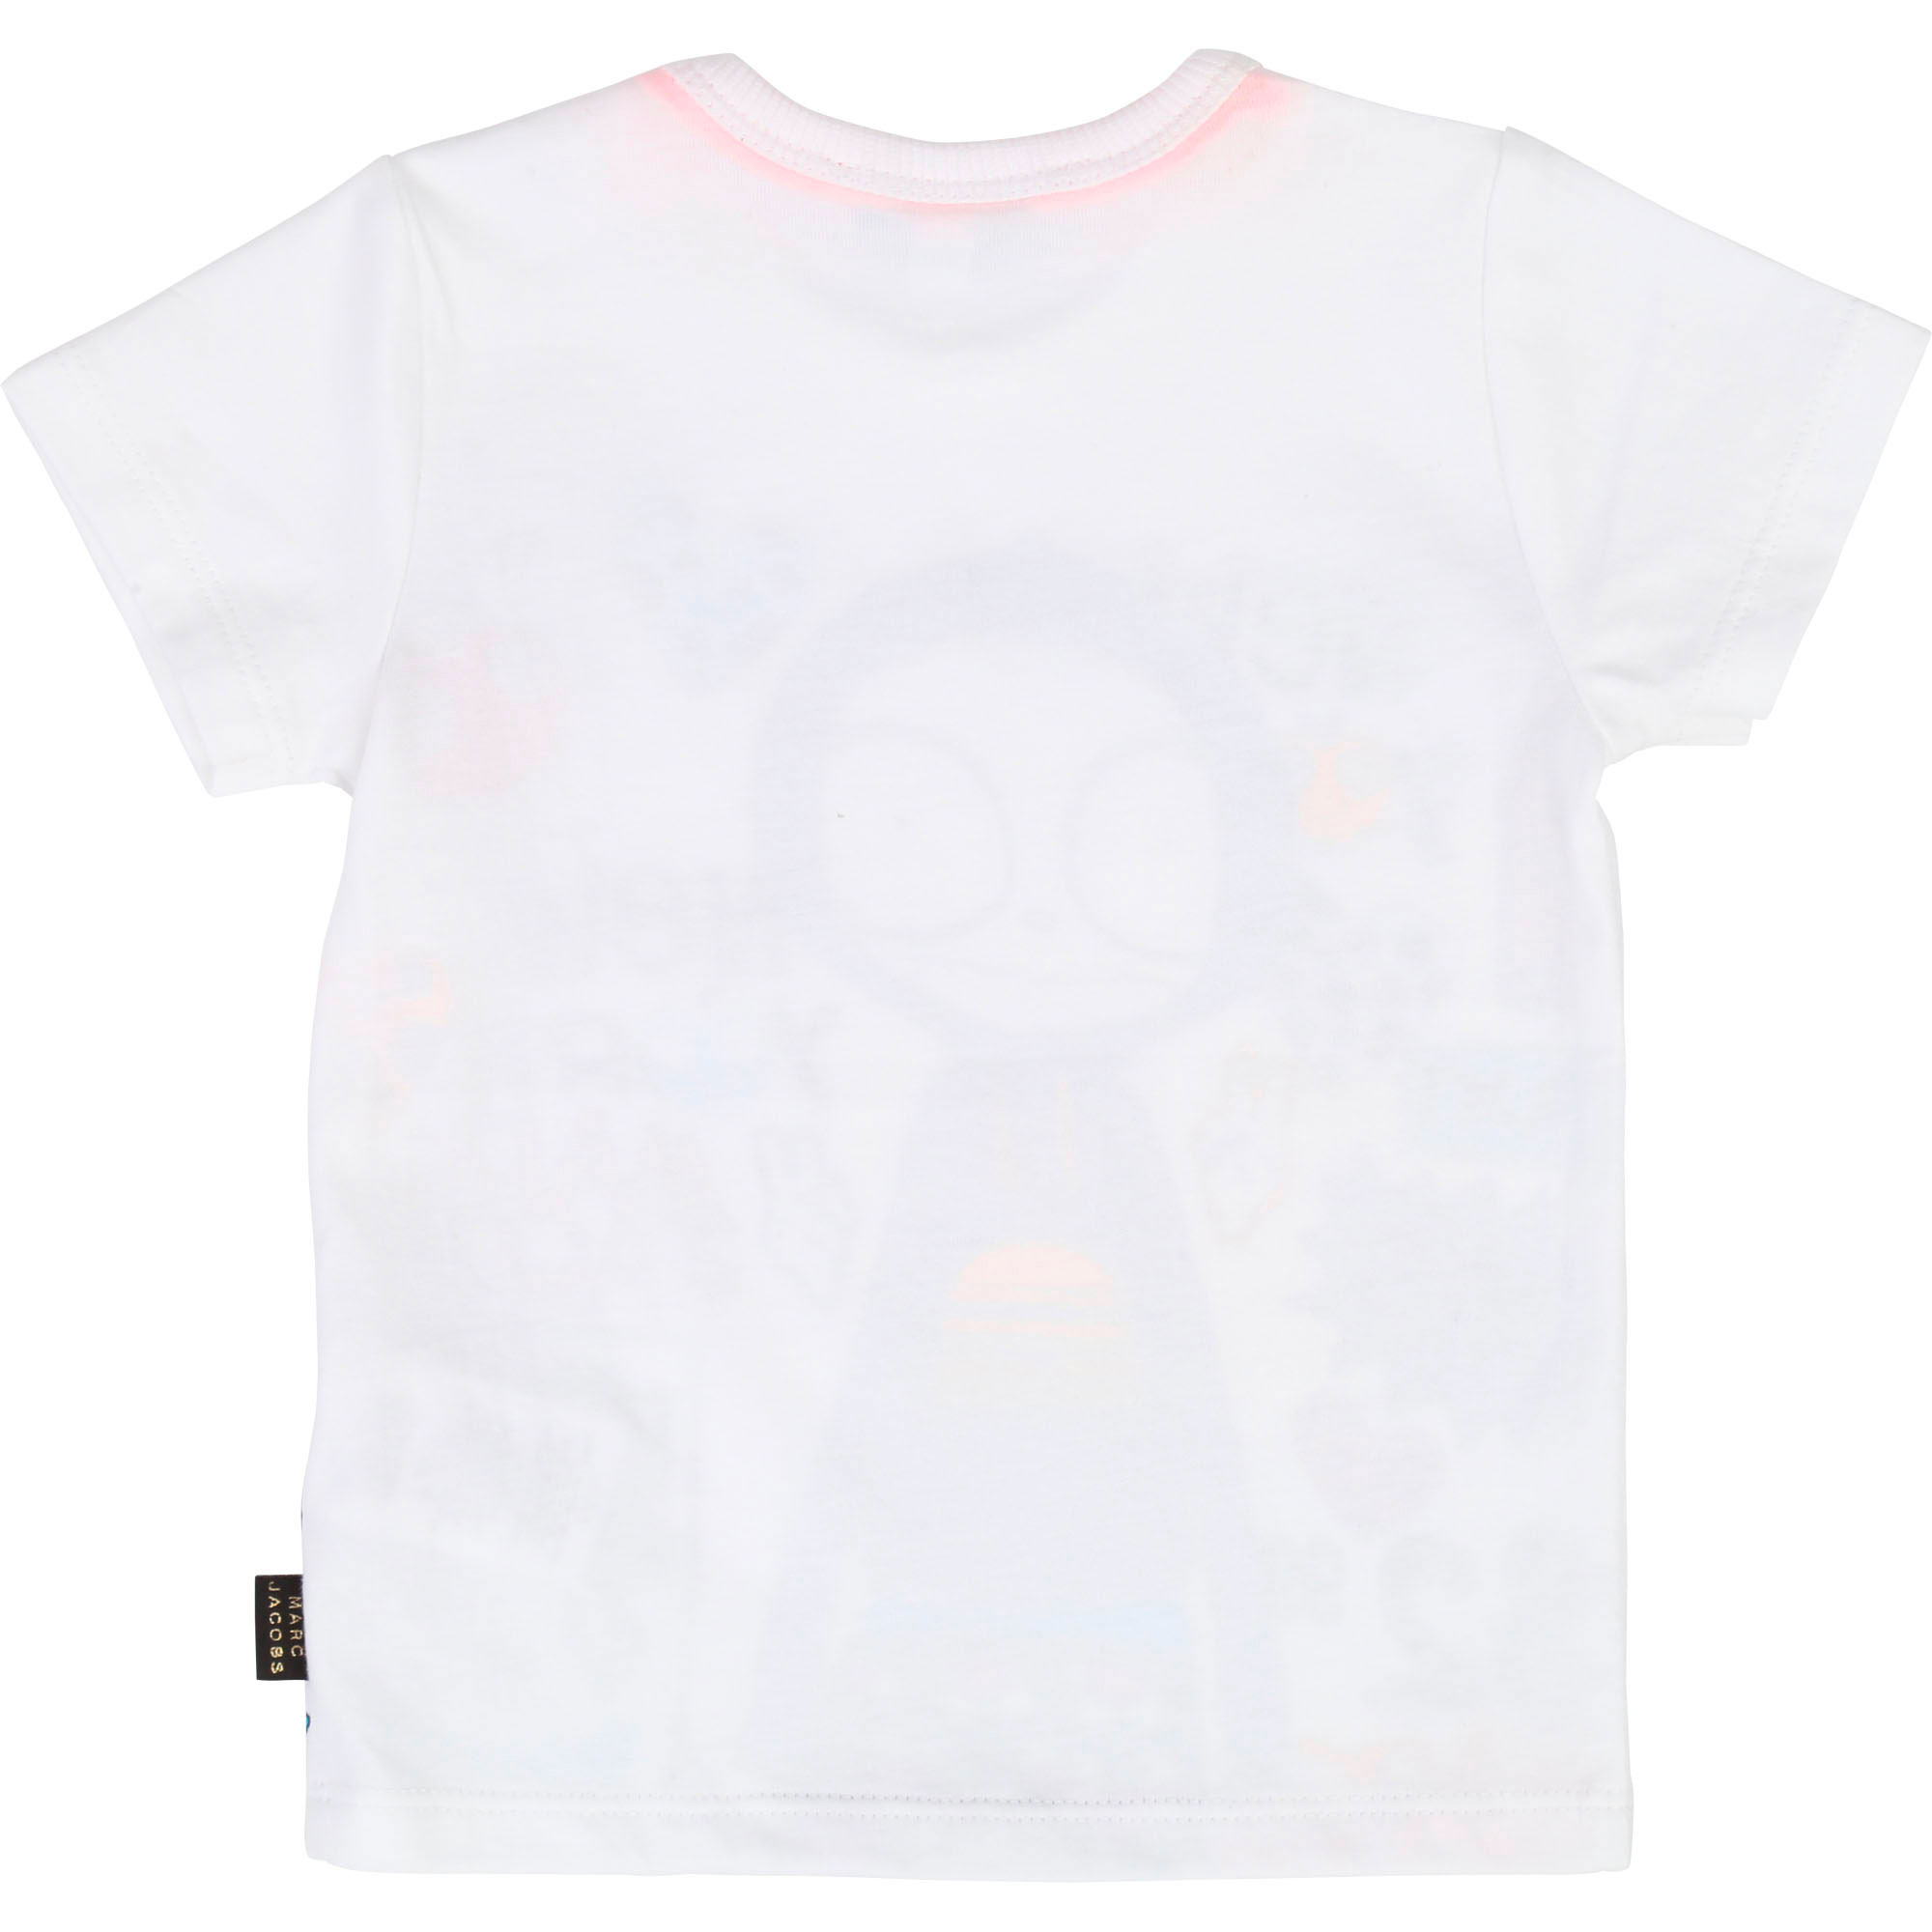 Shoulder-fastening T-shirt THE MARC JACOBS for BOY